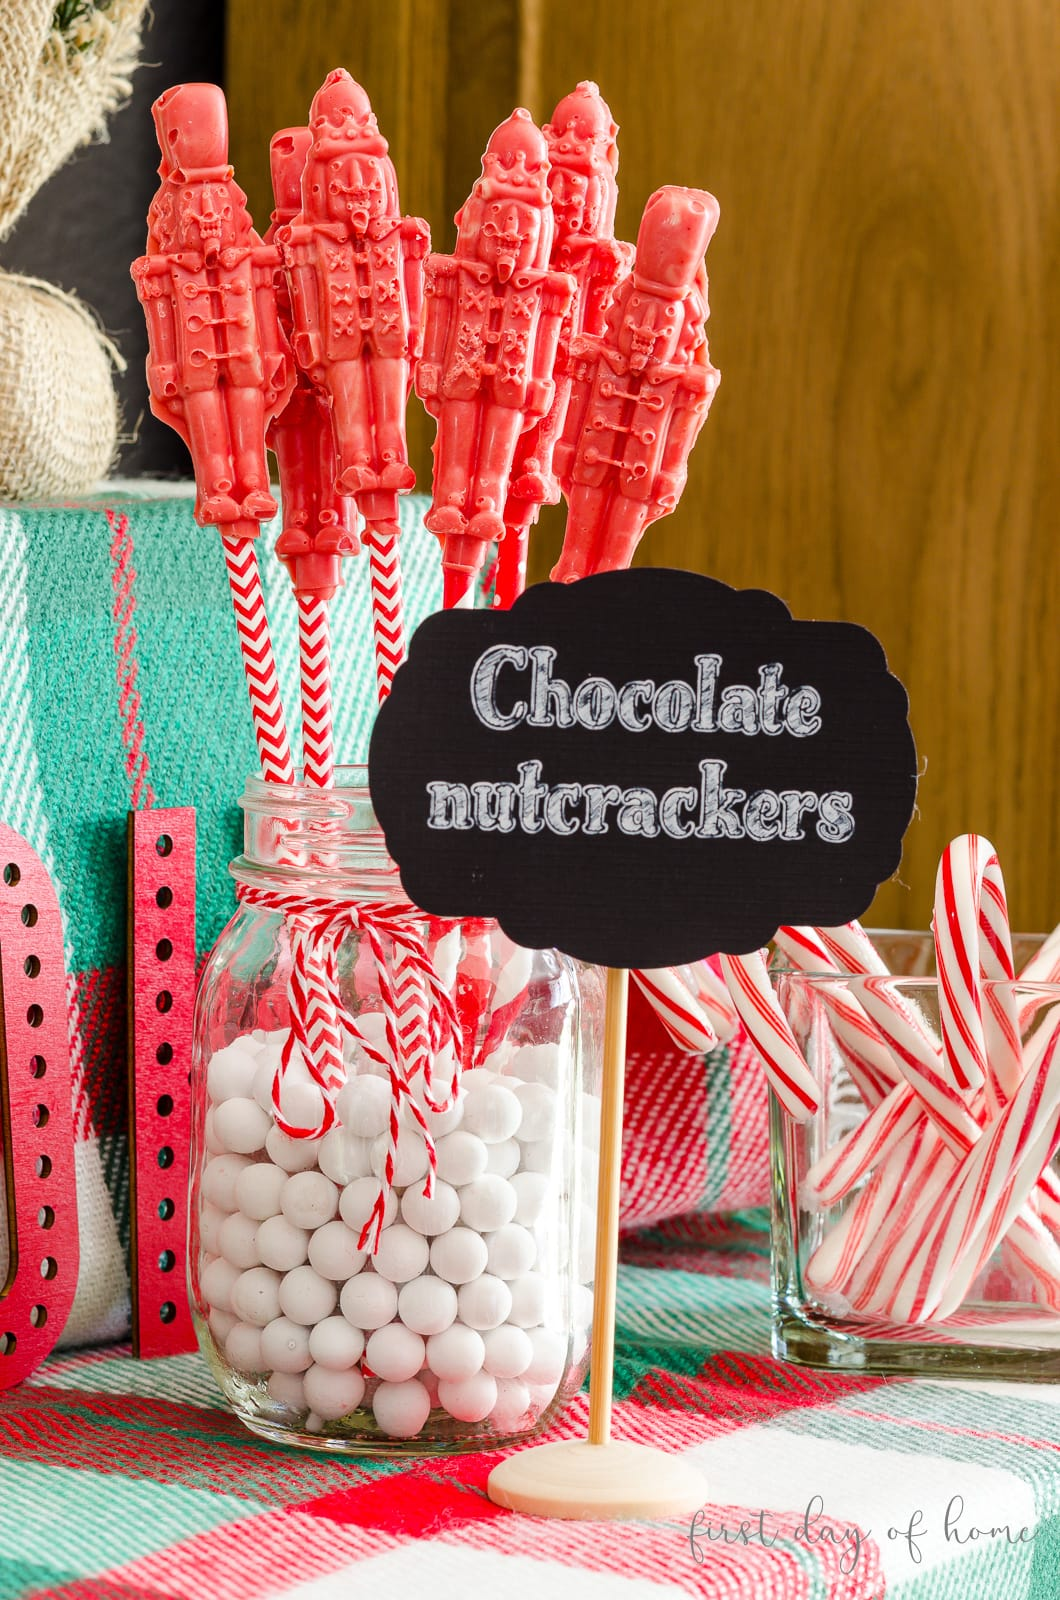 White chocolate nutcracker candies with chalkboard printable sign